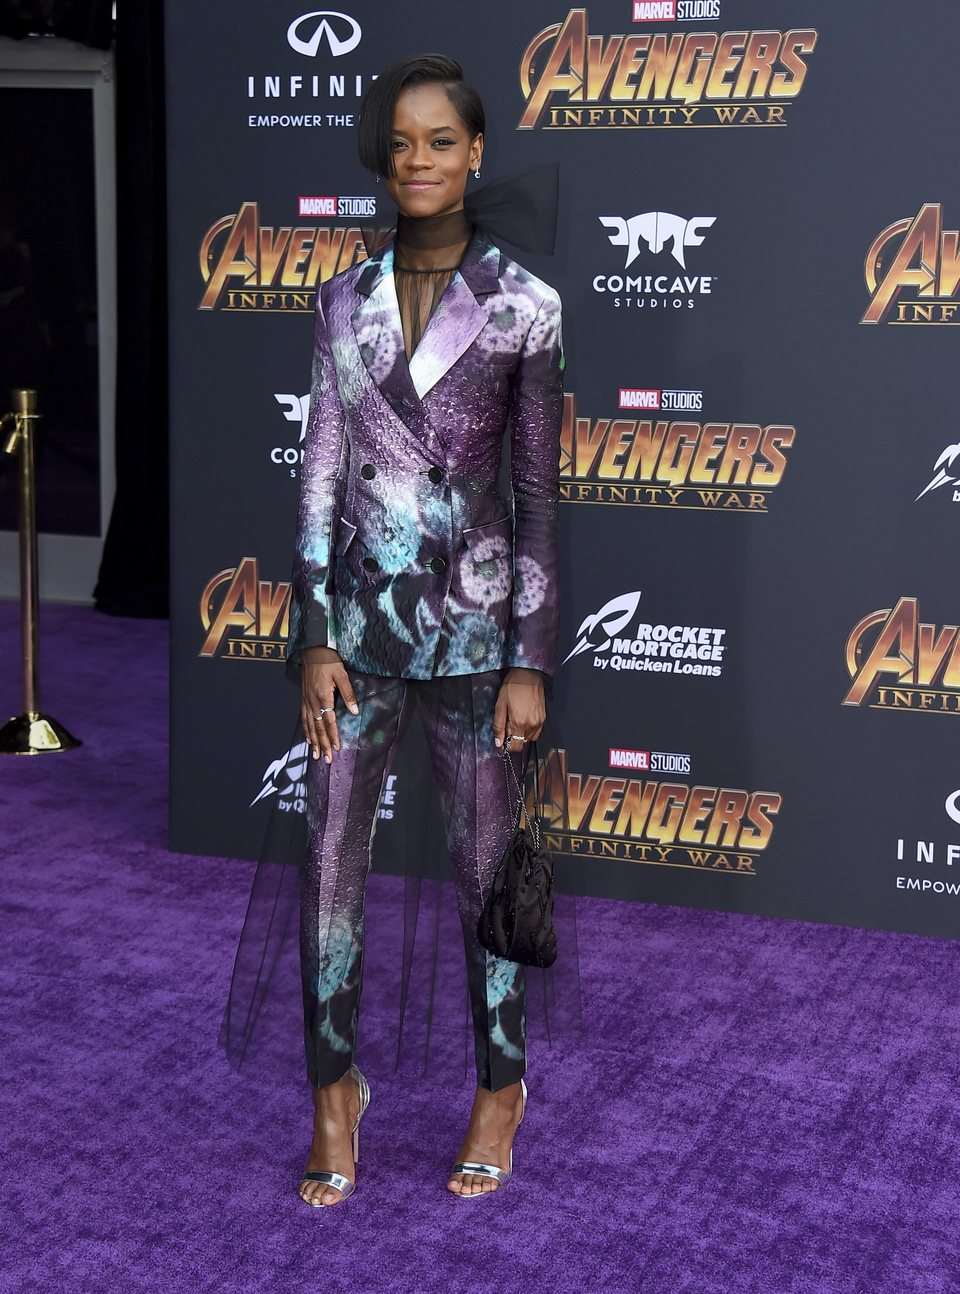 Letitia Wright on the purple carpet at the world premiere of 'Avengers: Infinity War'